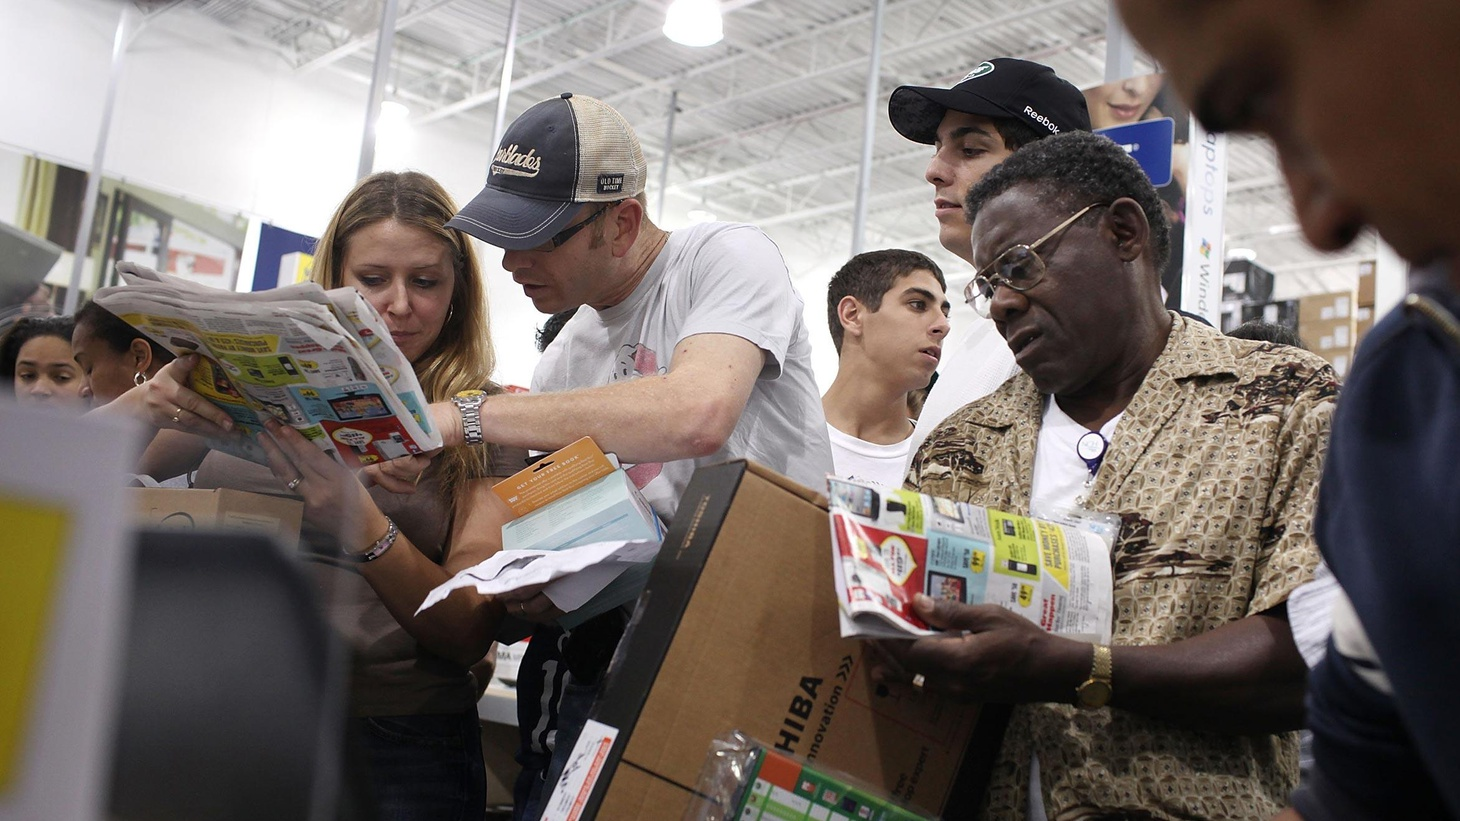 With Black Friday sales now starting on Thanksgiving Day, there's a growing backlash against commercialization of one of the last almost commerce-free days of the year.